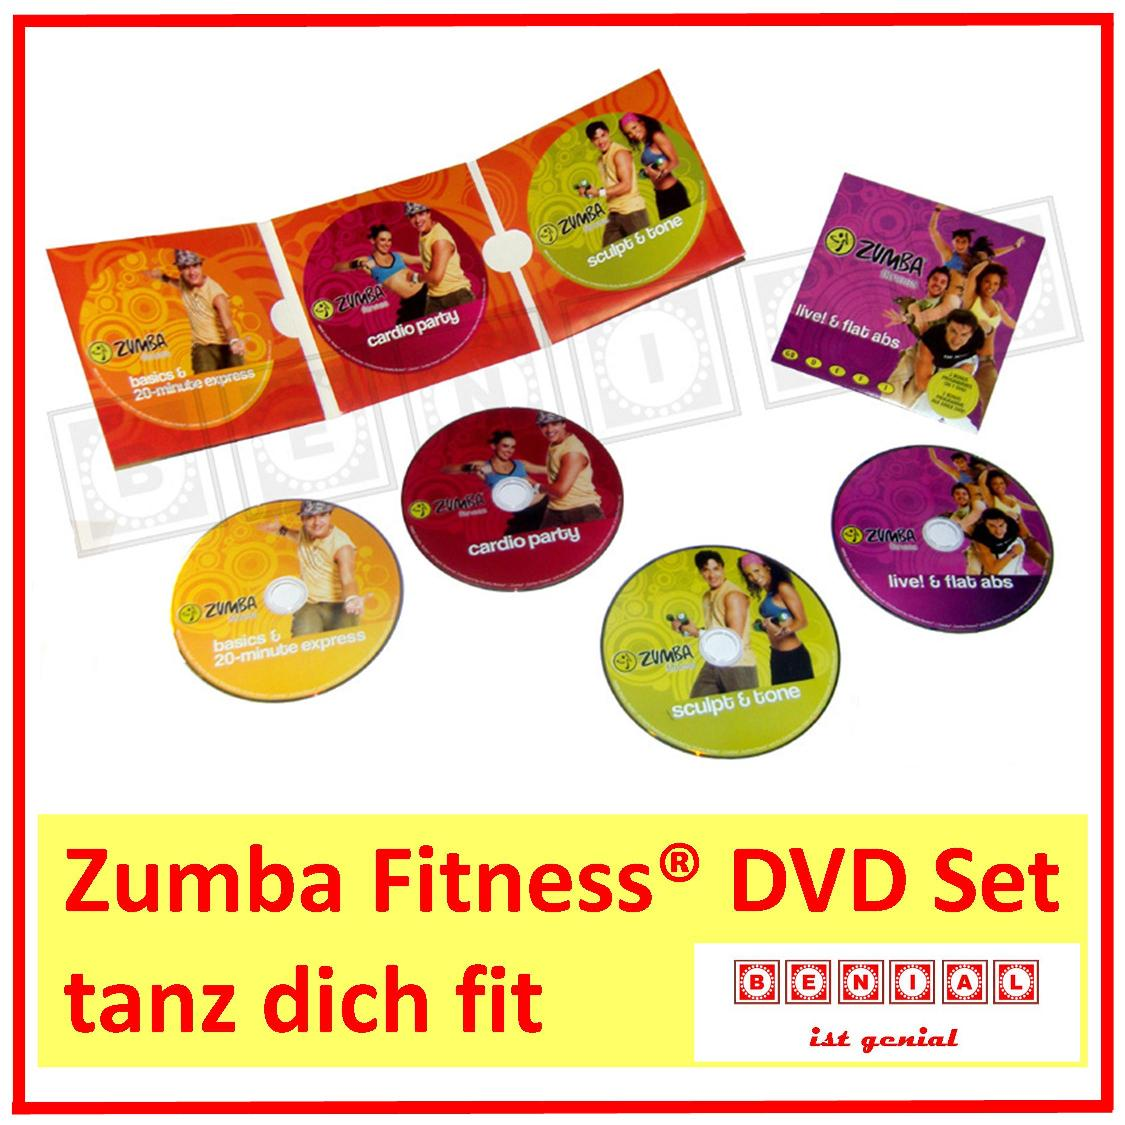 Zumba-Fitness-DVD-Programm-Set-4x-DVD-Party-Tanz-Fitness-DVD-Training-TOP-WOW